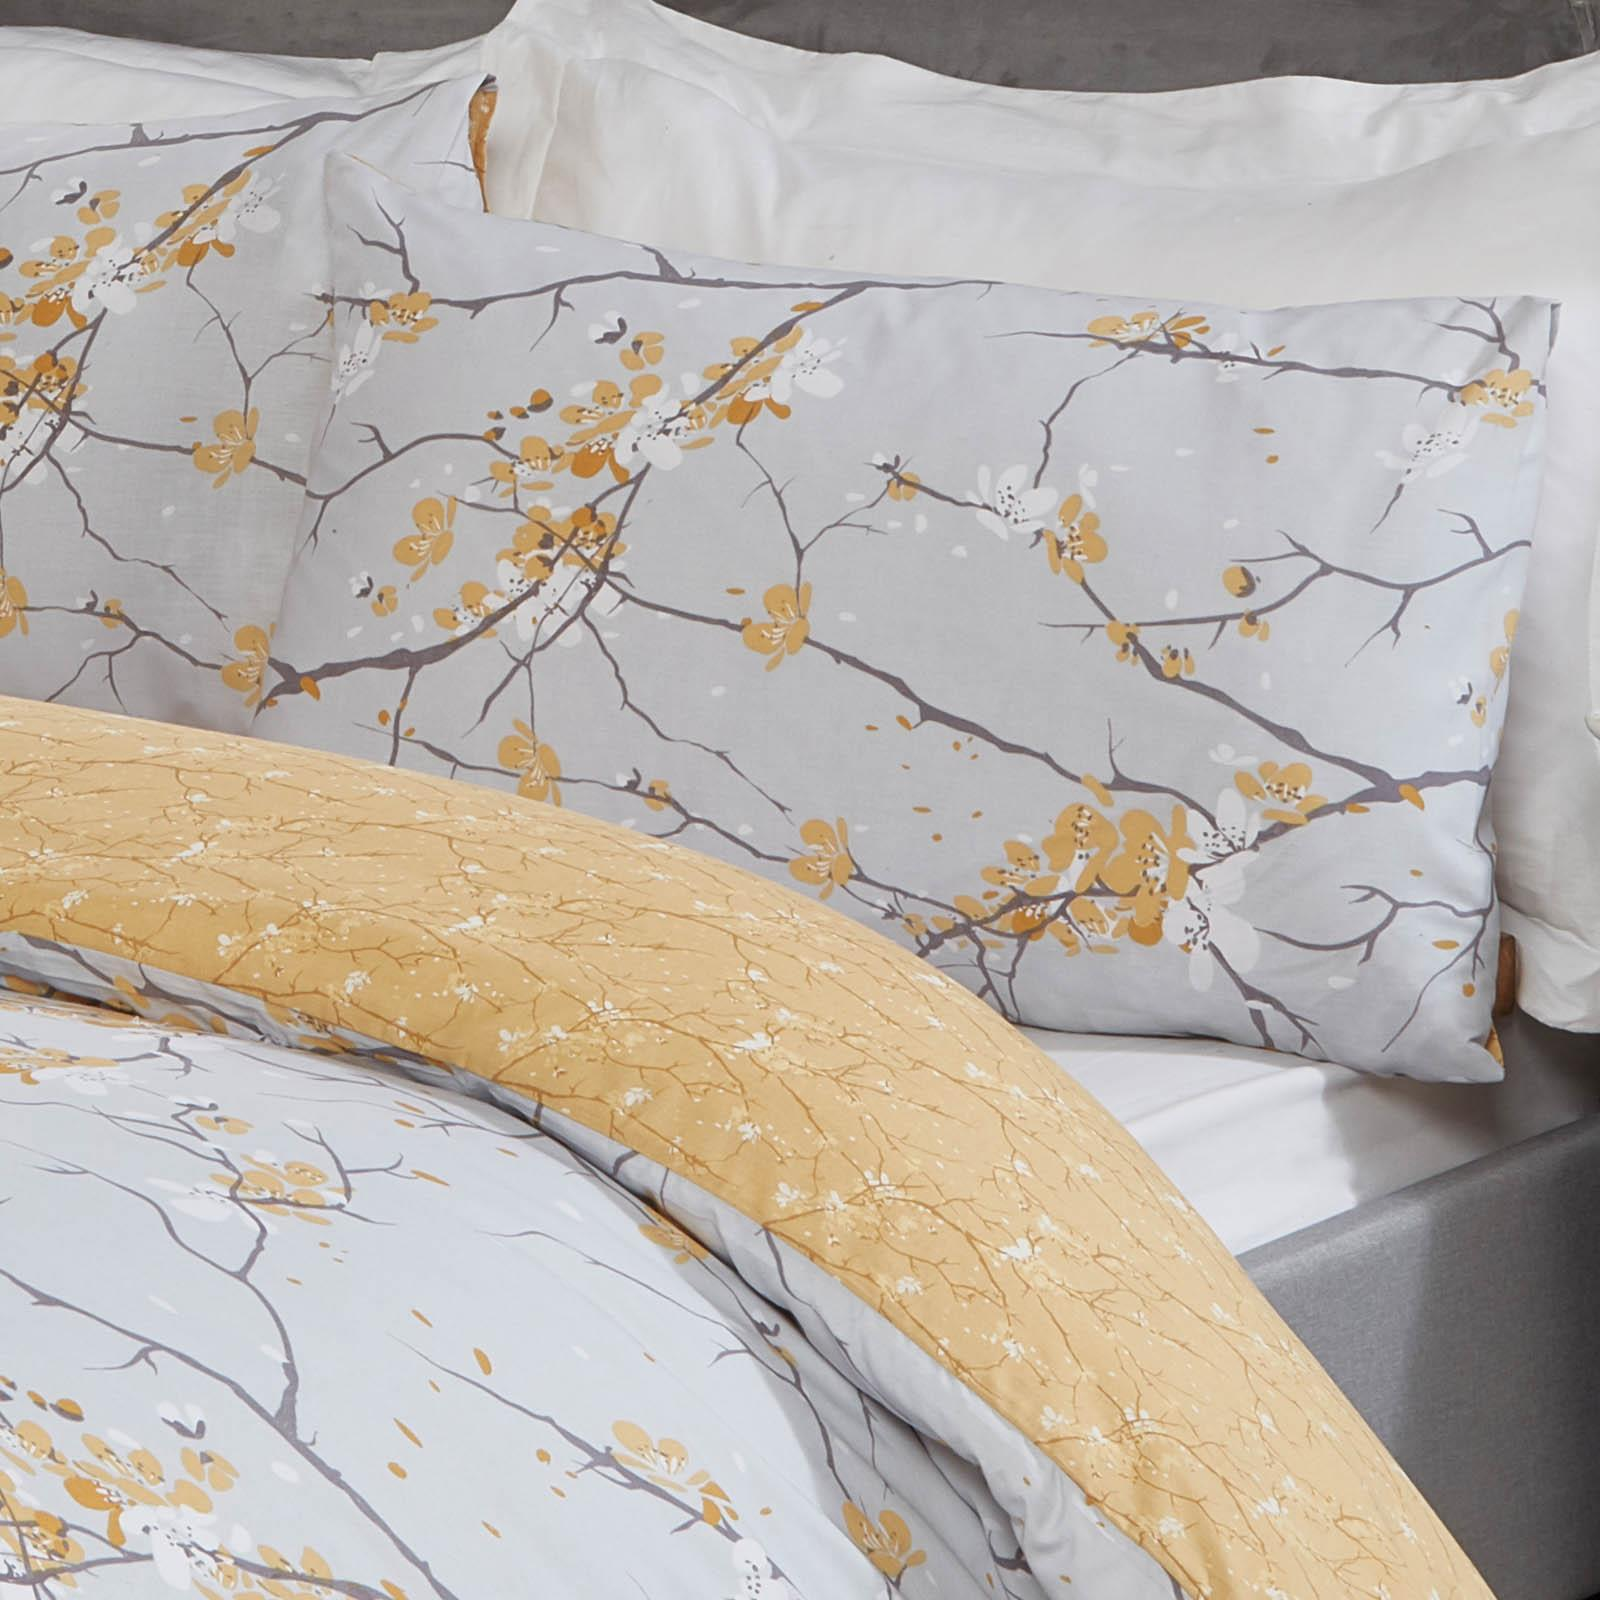 thumbnail 21 - Dreamscene Spring Blossoms Duvet Cover with Pillowcases Bedding Set Blush Ochre